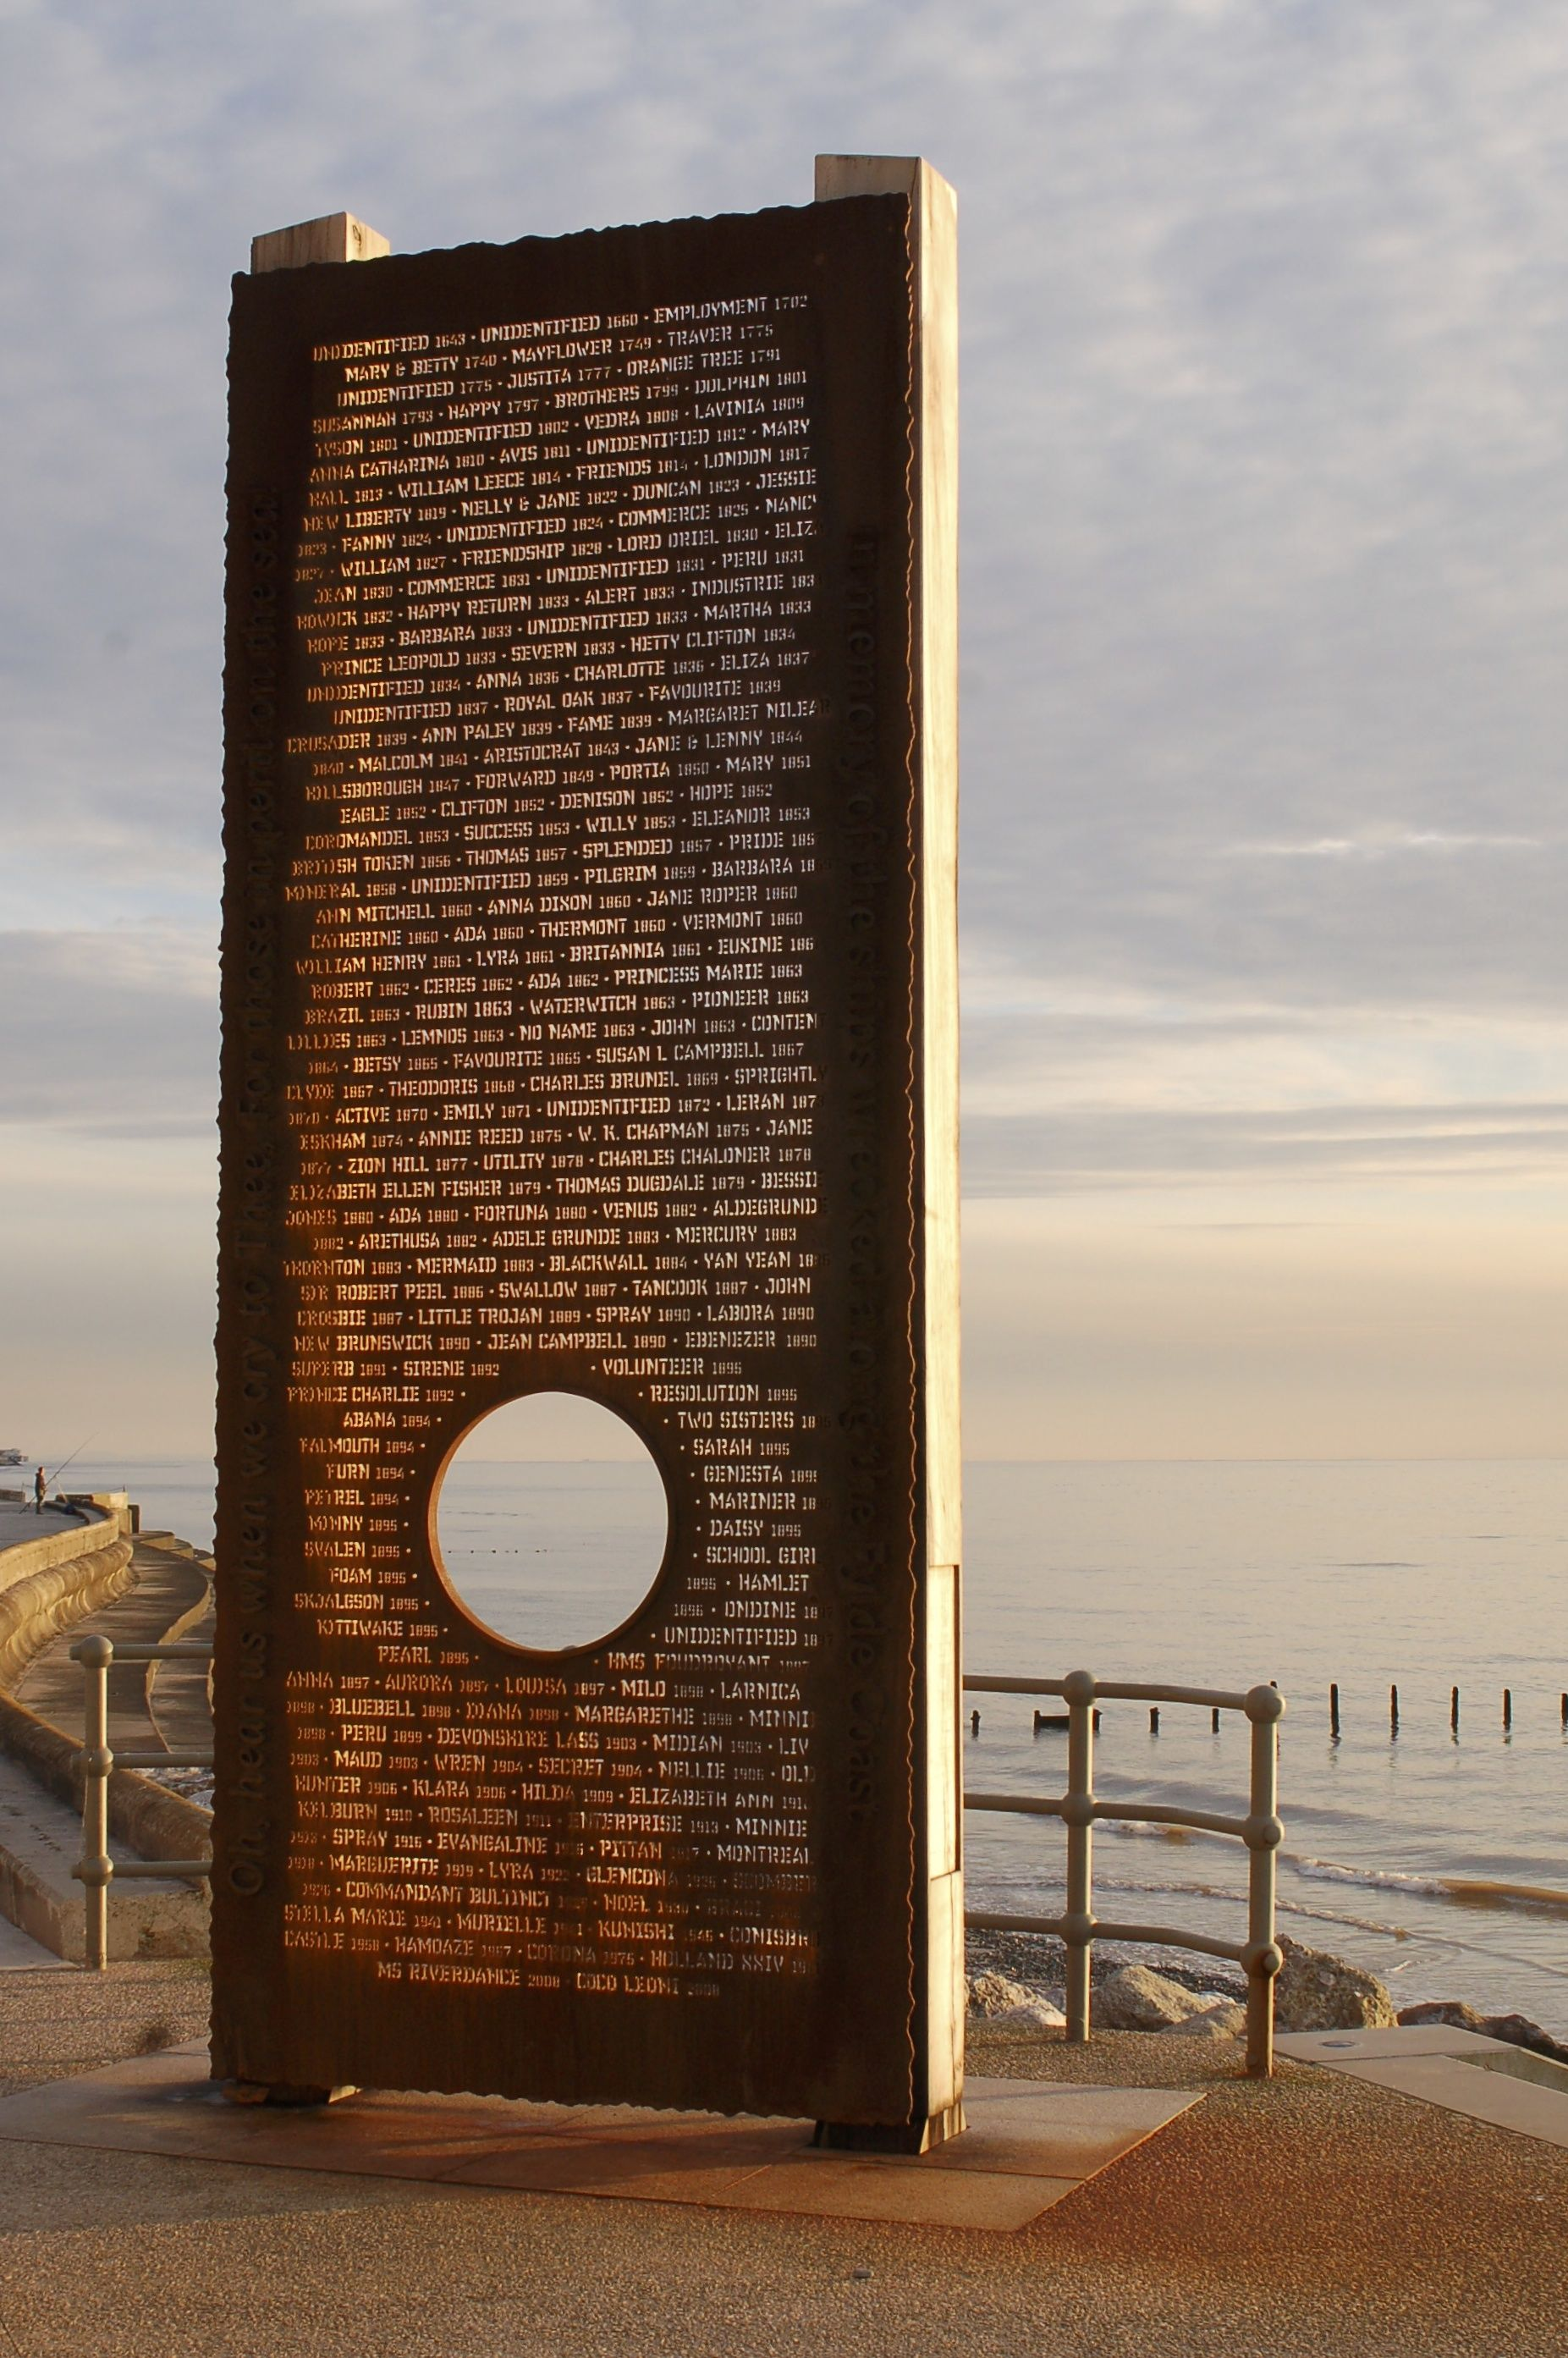 FYLDE SHIPWRECK MEMORIAL   4.6m tall 'wall of words' positioned end of promenade